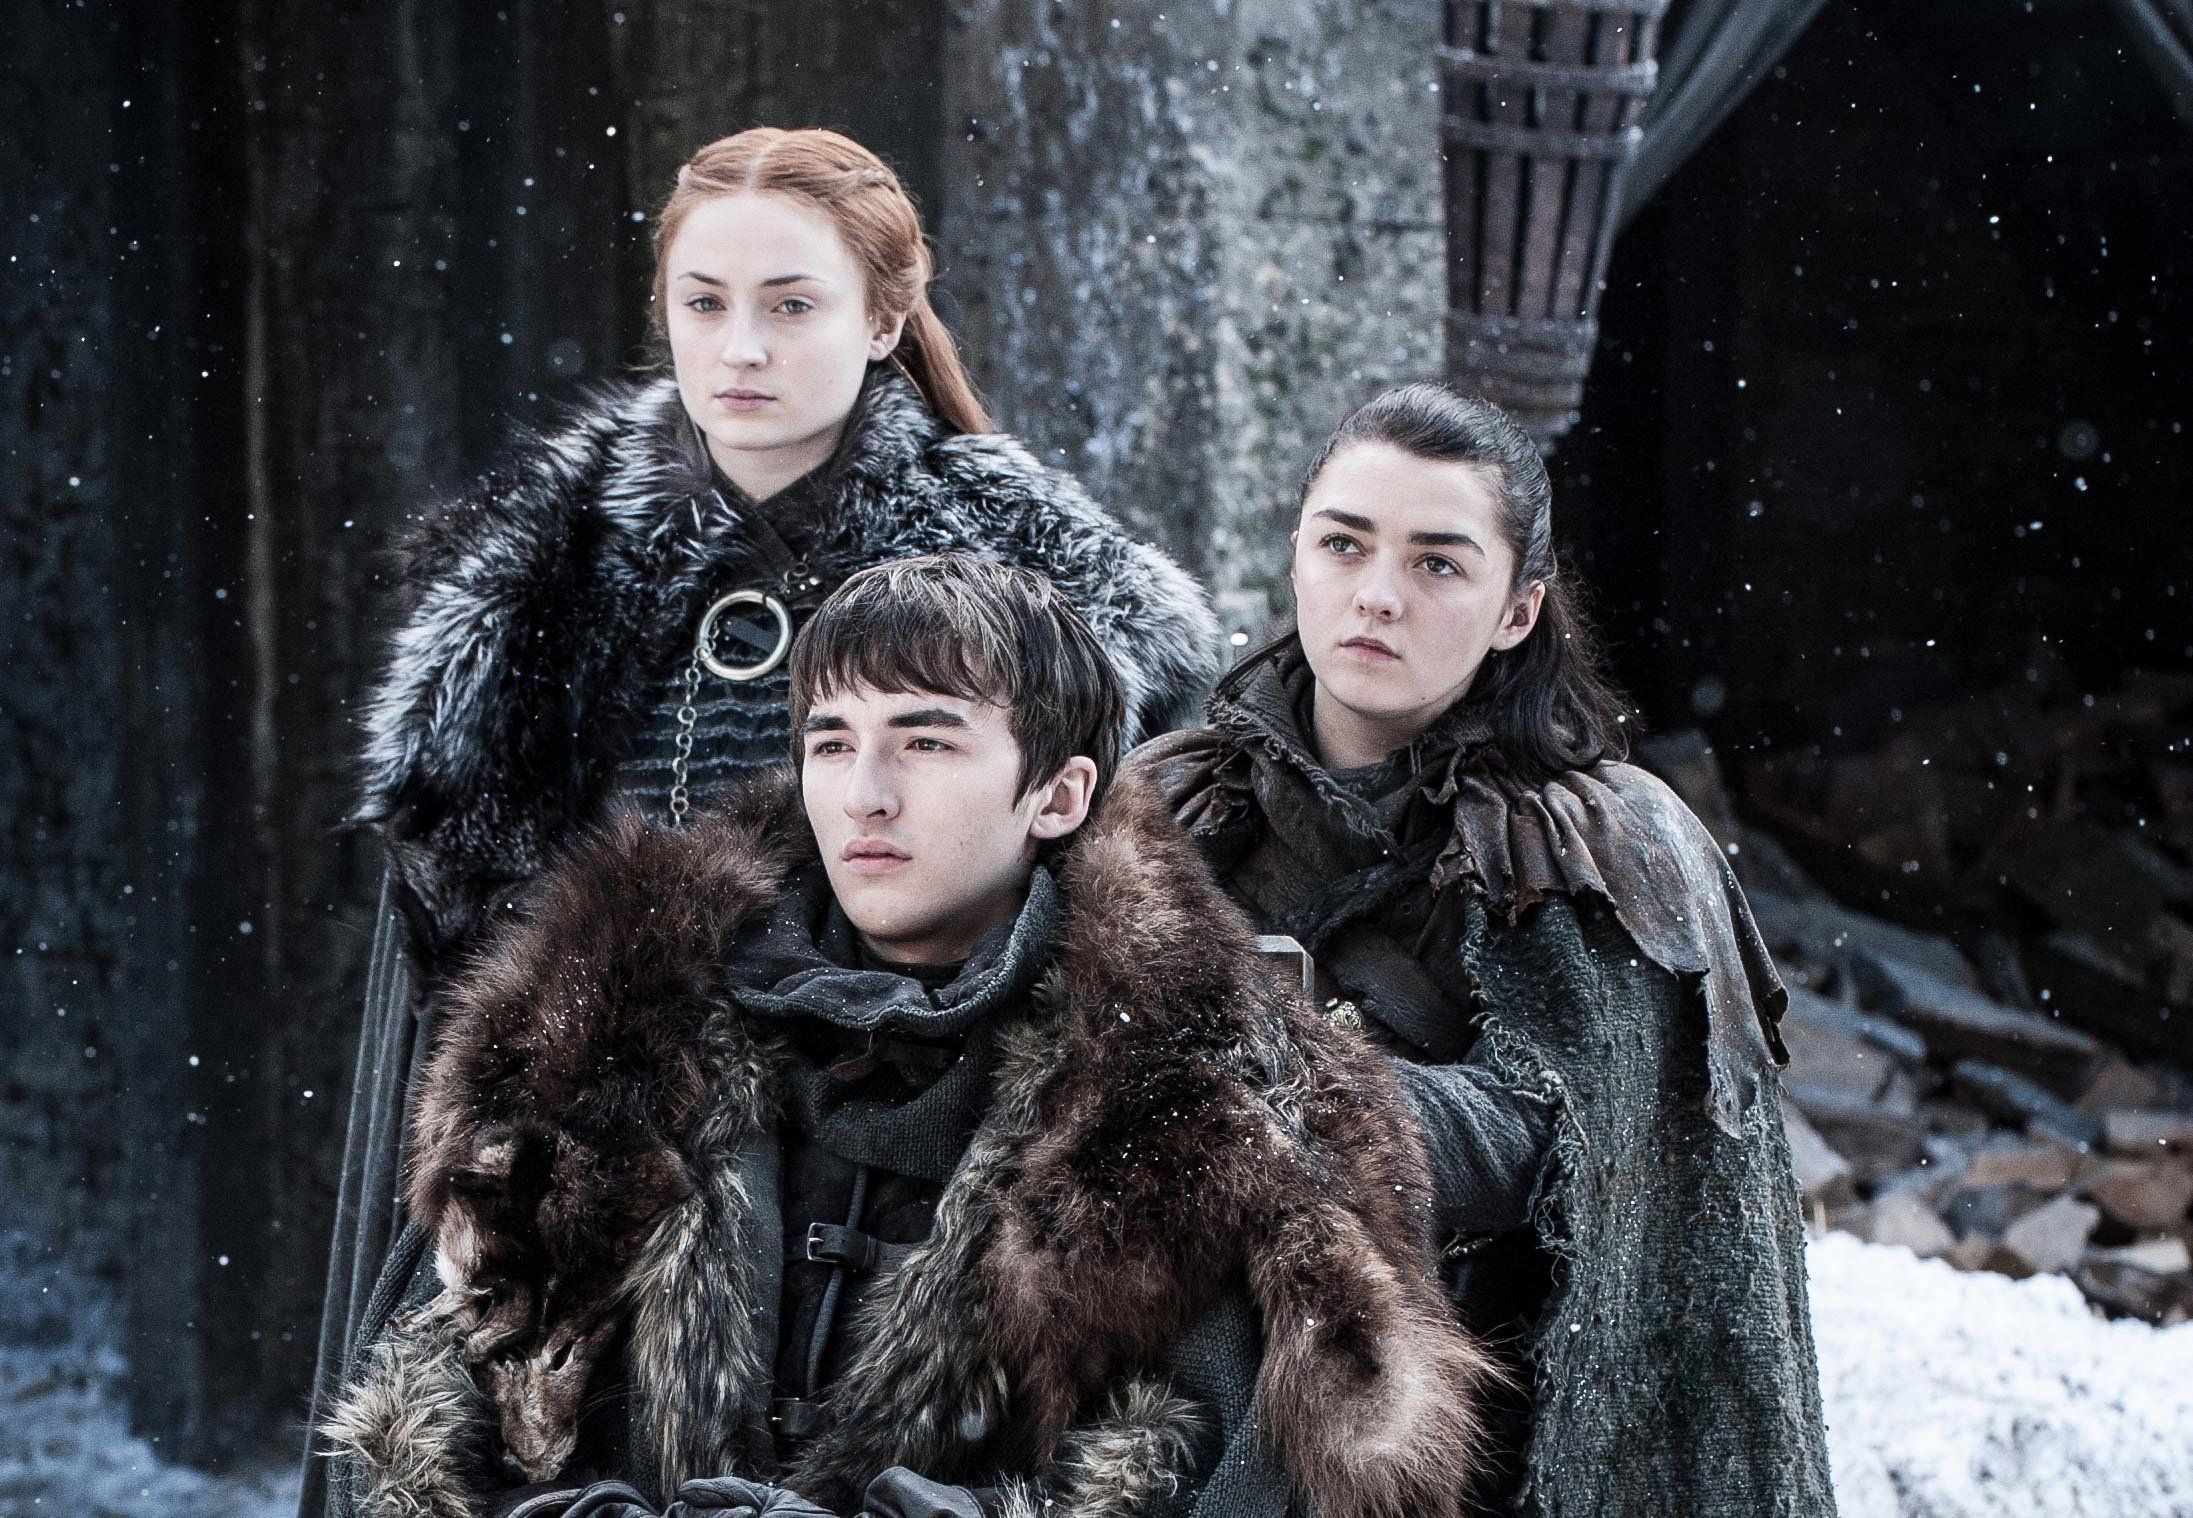 The Stark sisters have pretty good chances of surviving, compared with many other main characters.